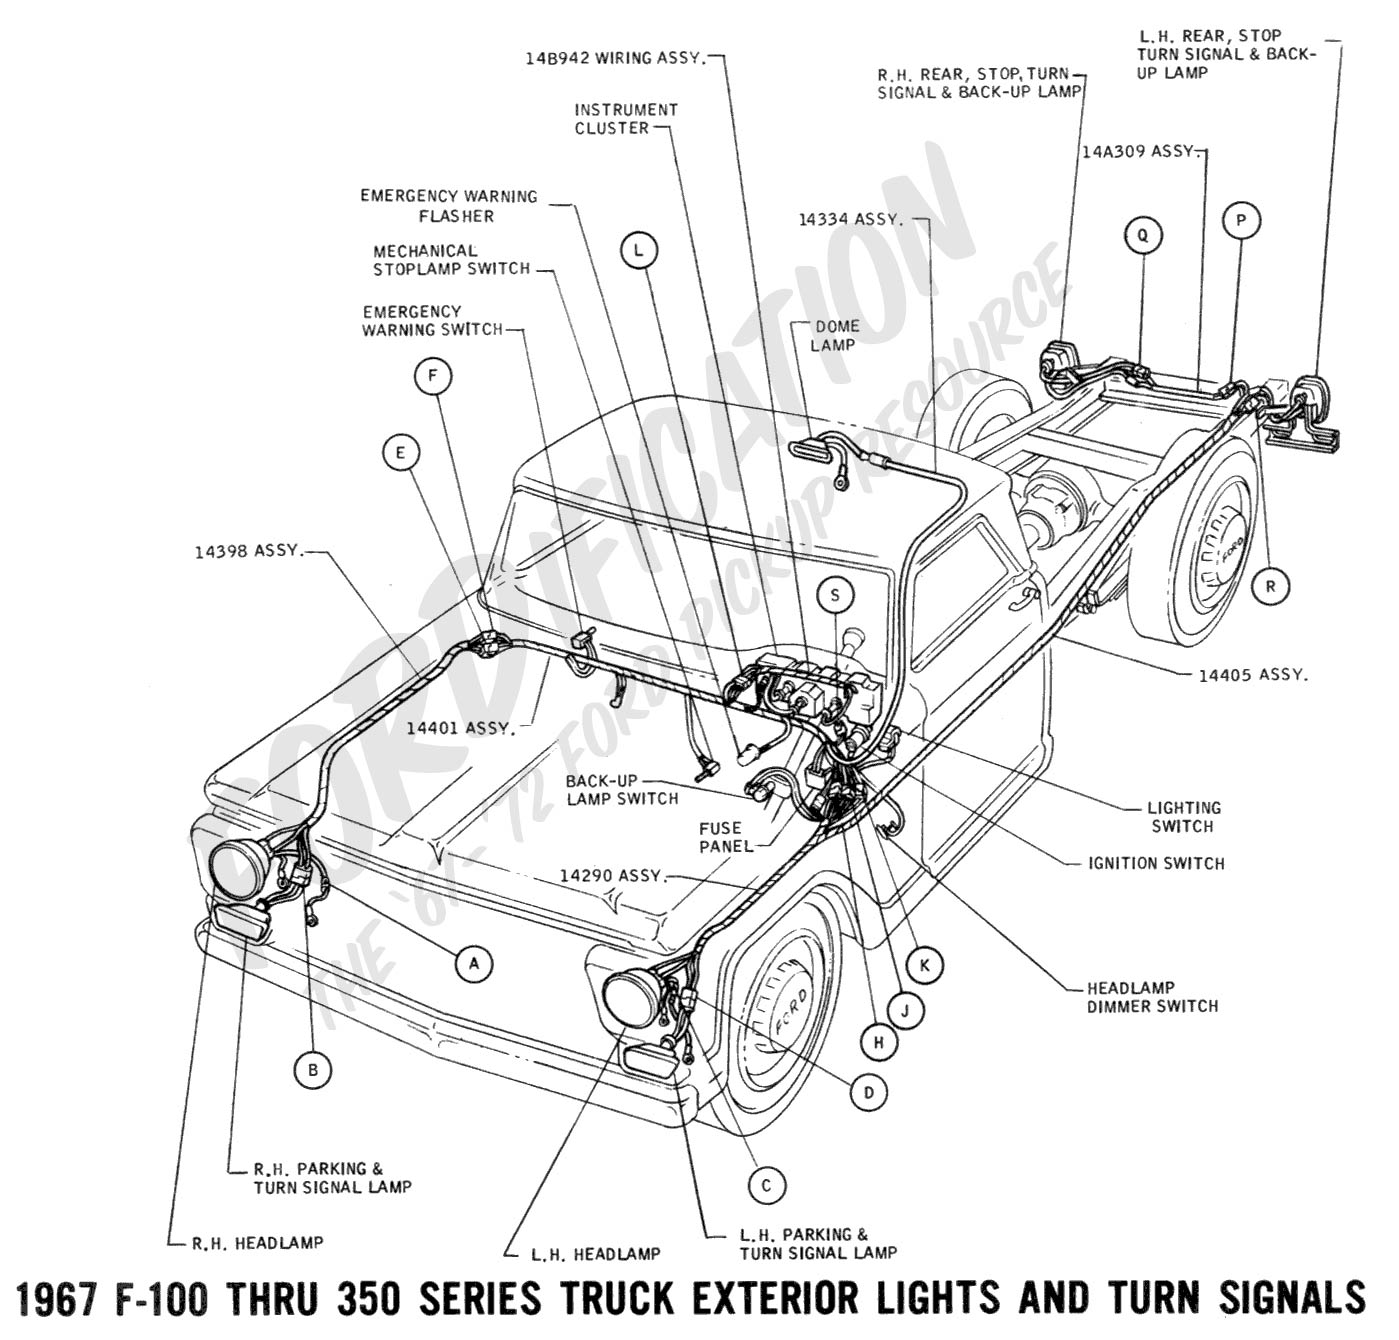 wiring 1967extlights01 ford truck technical drawings and schematics section h wiring 1999 ford f150 turn signal wiring diagram at gsmx.co